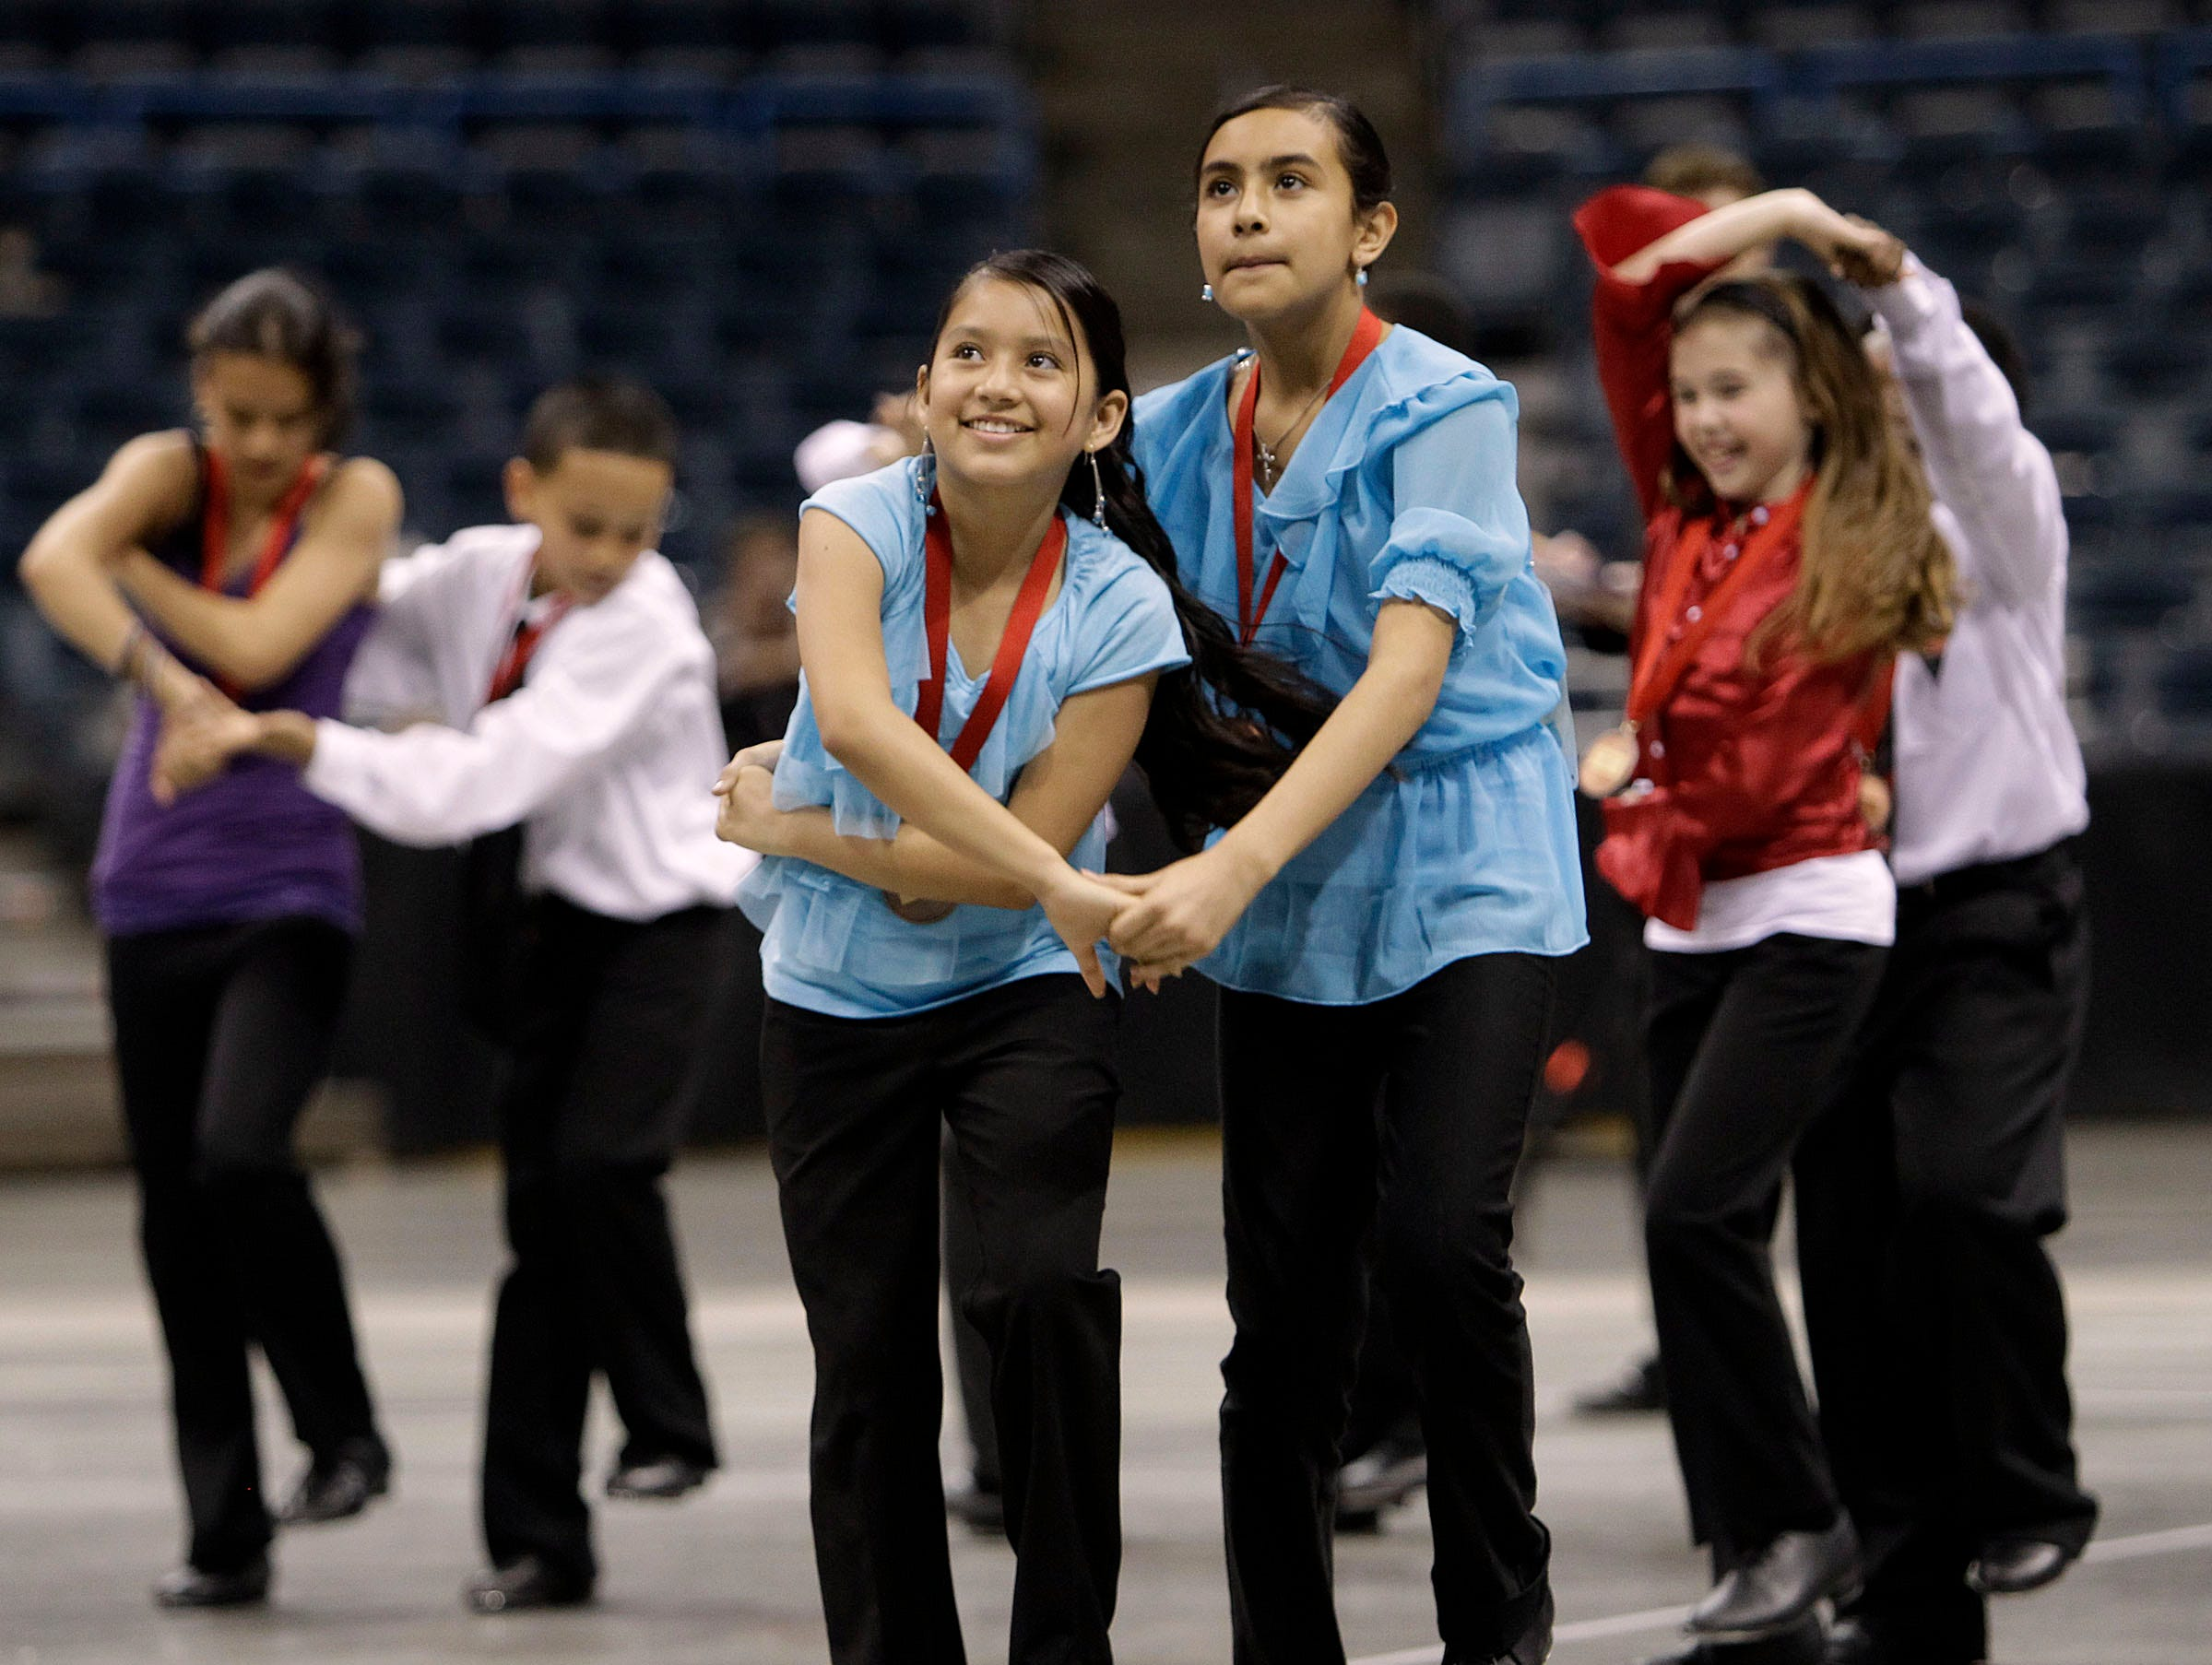 2011: St. Raphael students Nancy Juarez (left) and Jacqueline Sandoval-Hernandez perform and compete in the annual Mad Hot Ballroom show at the Bradley Center.